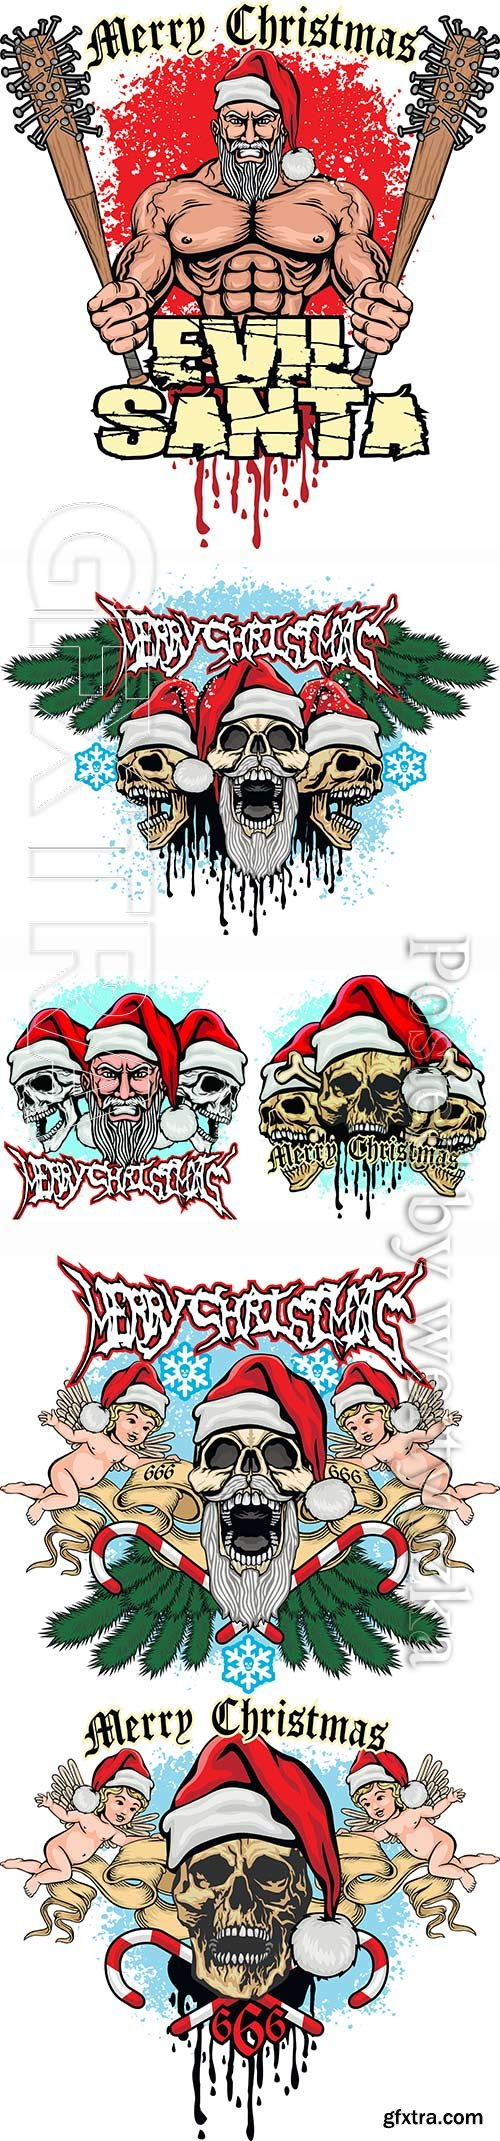 Xmas sign with skull and Santa Claus, grunge vintage design